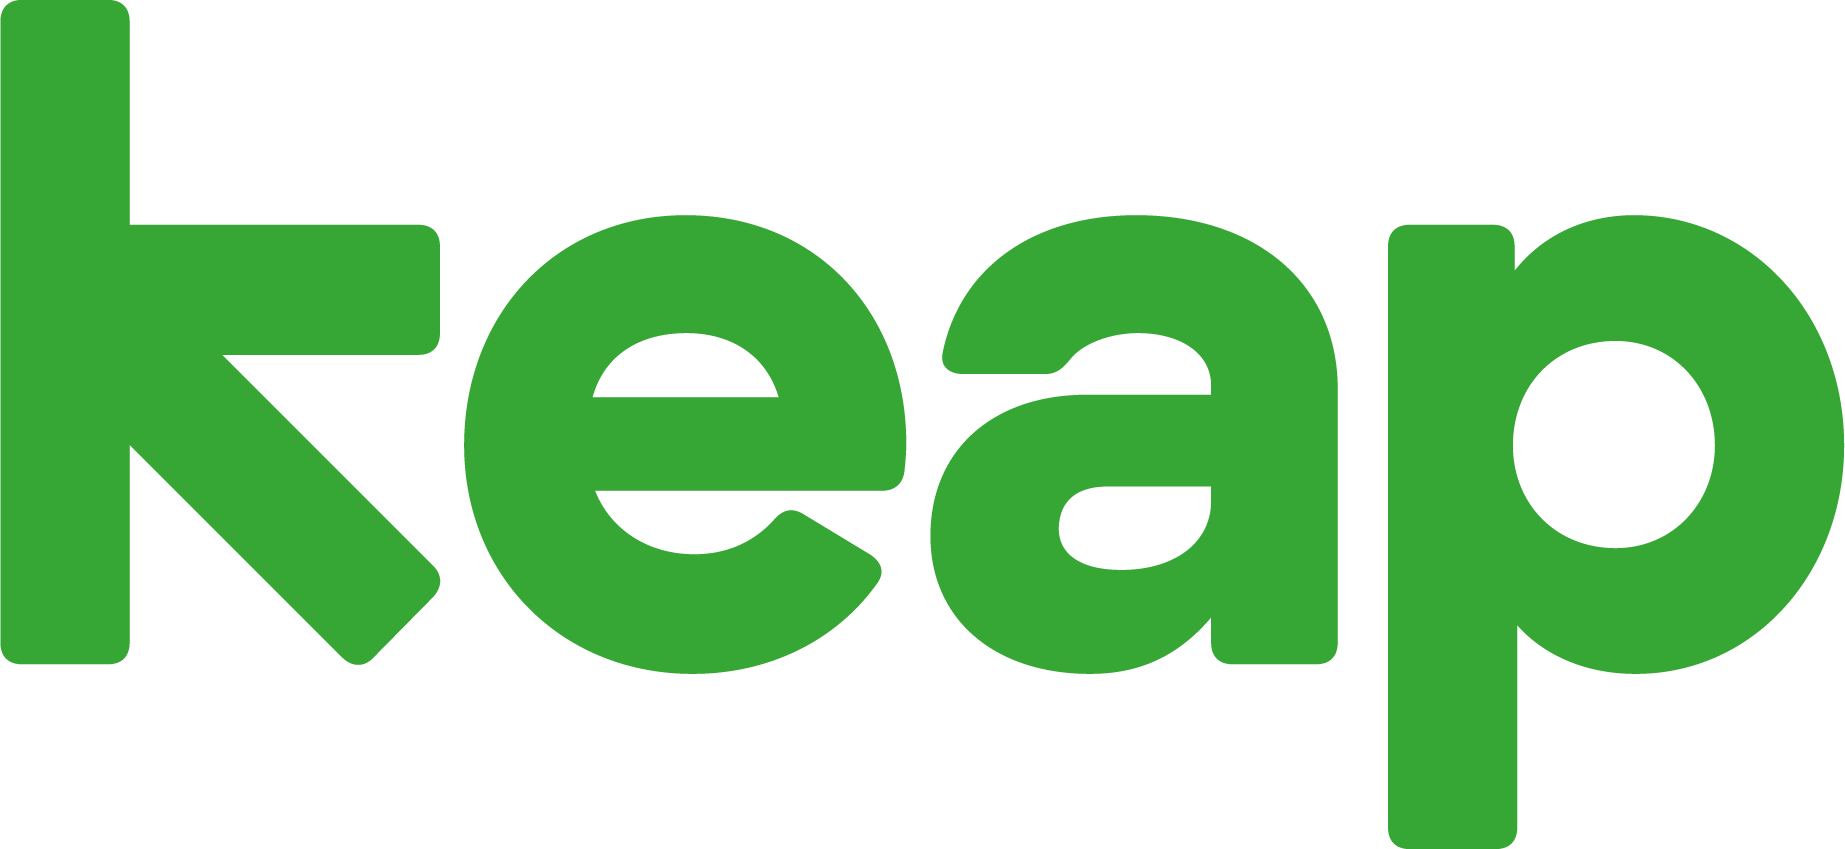 Wordmark Green.png